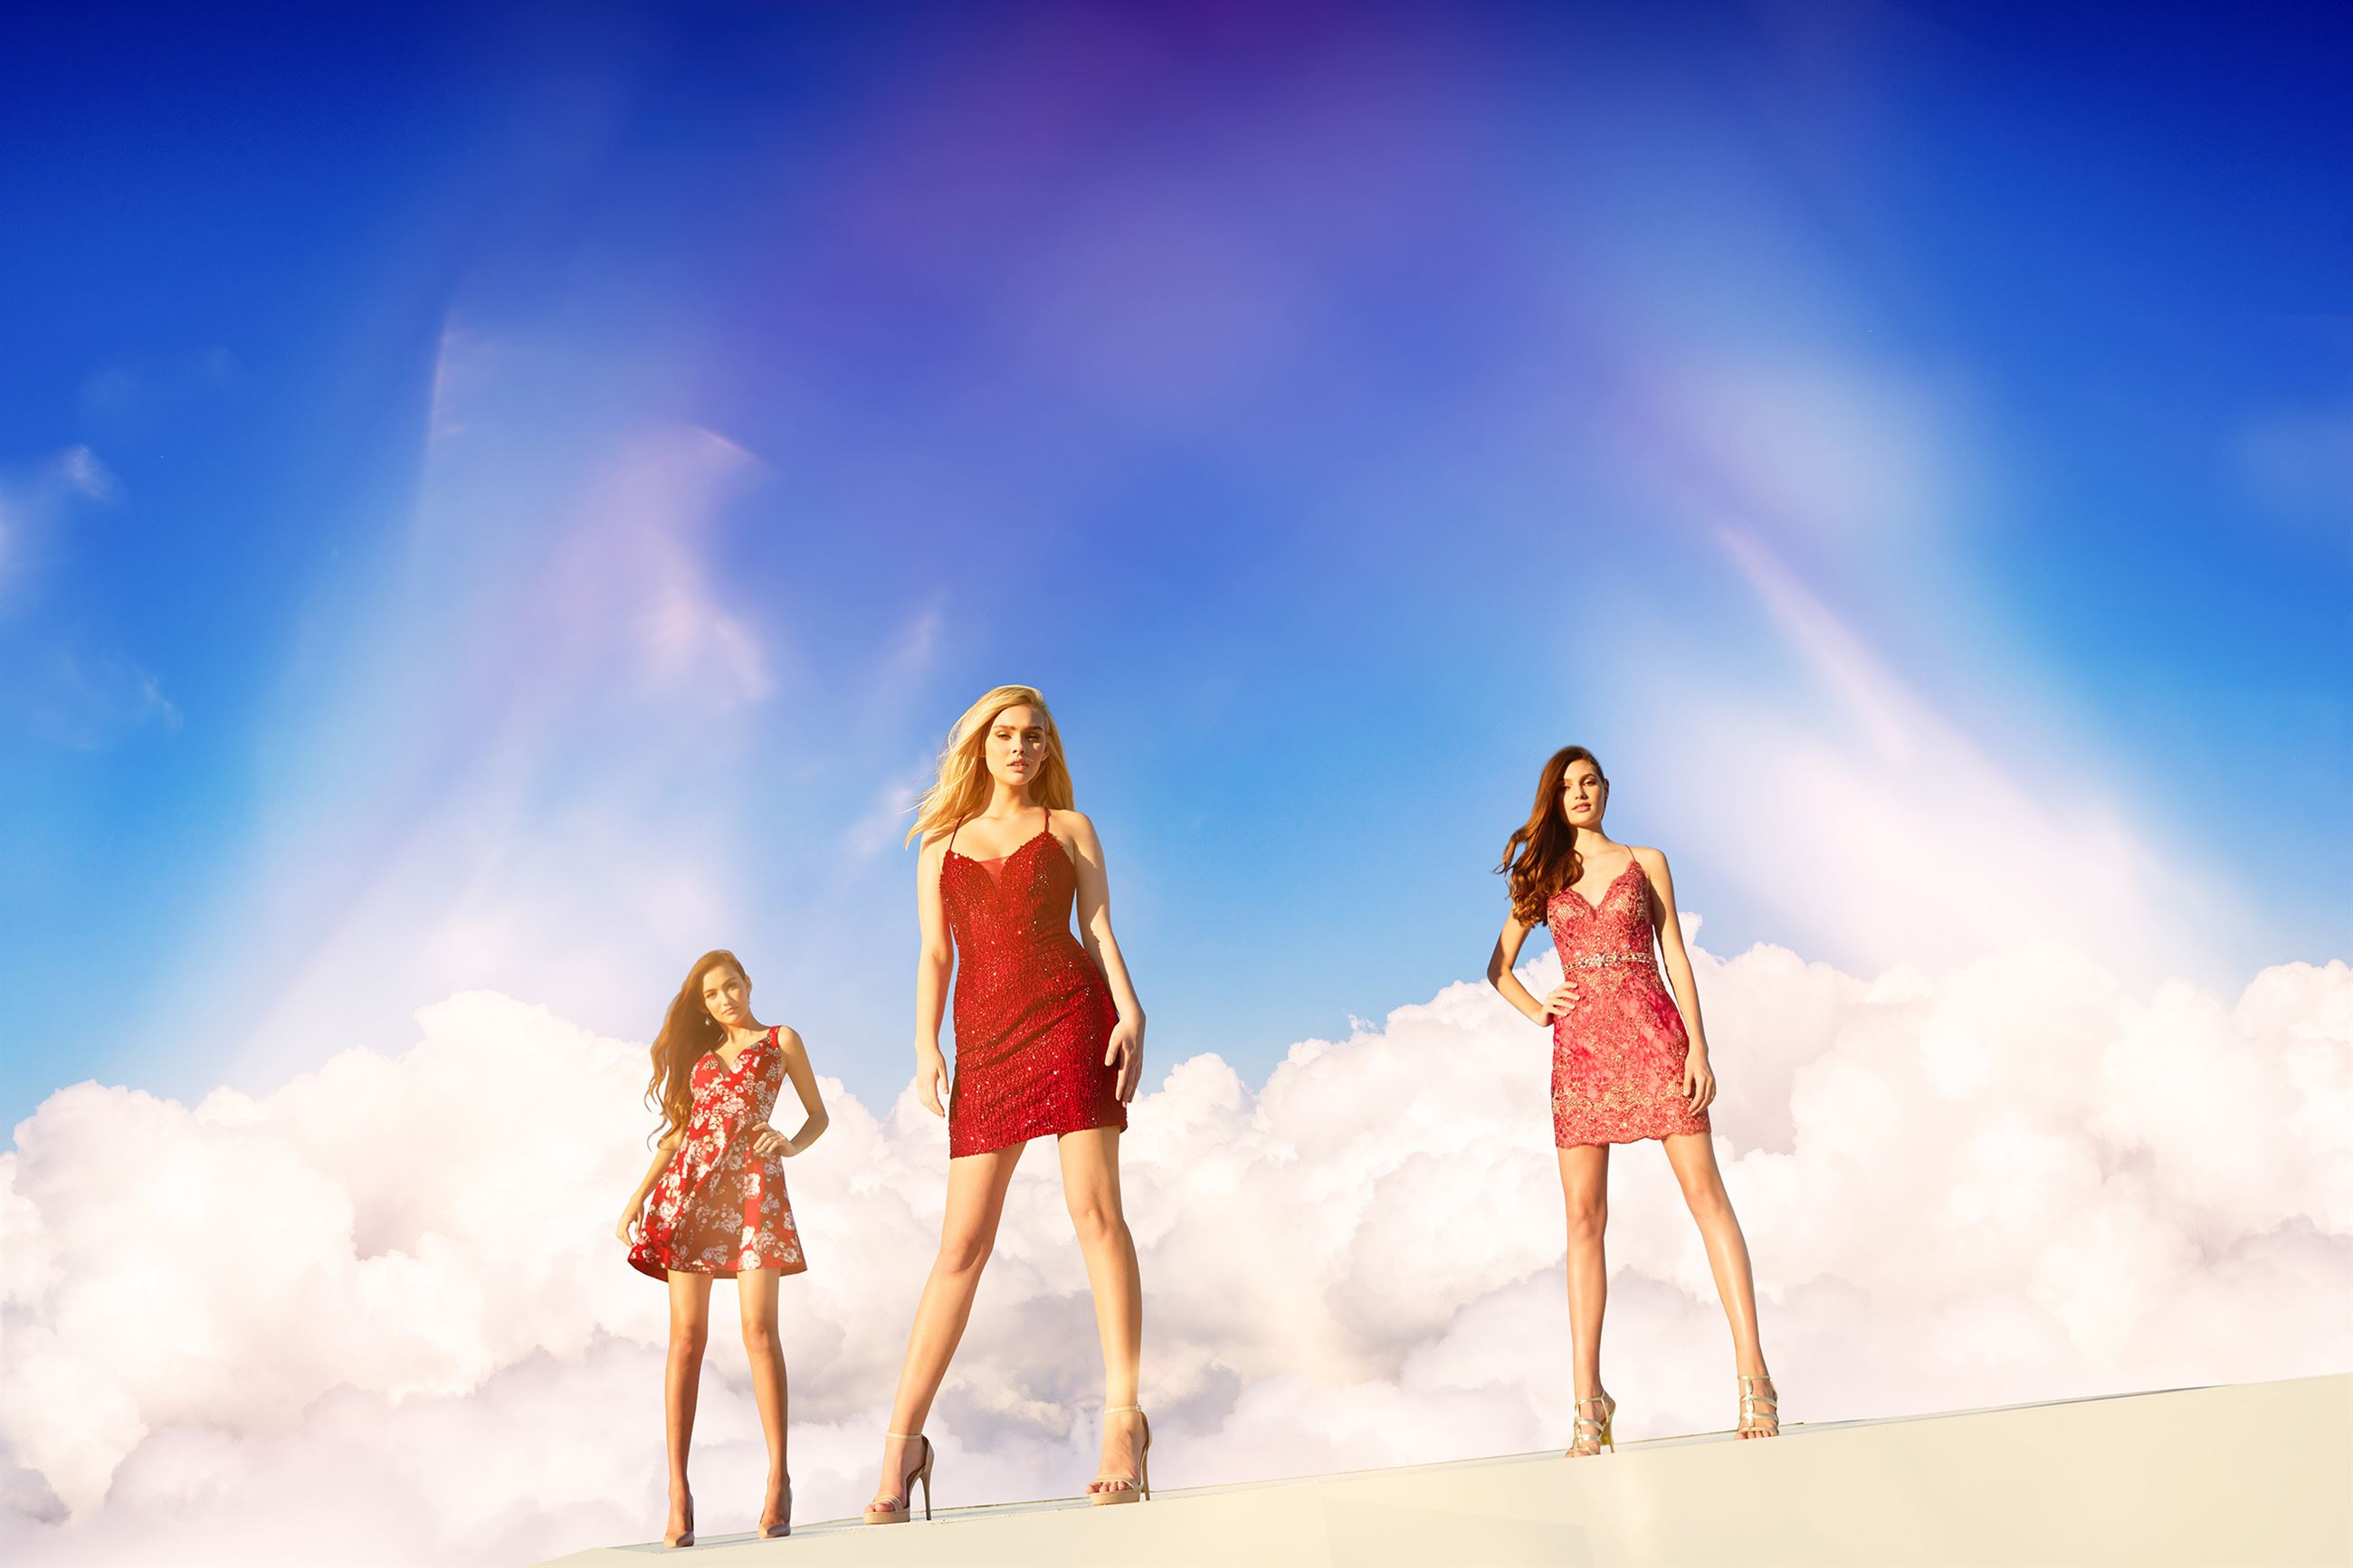 Models in short homecoming dresses in front of clouds